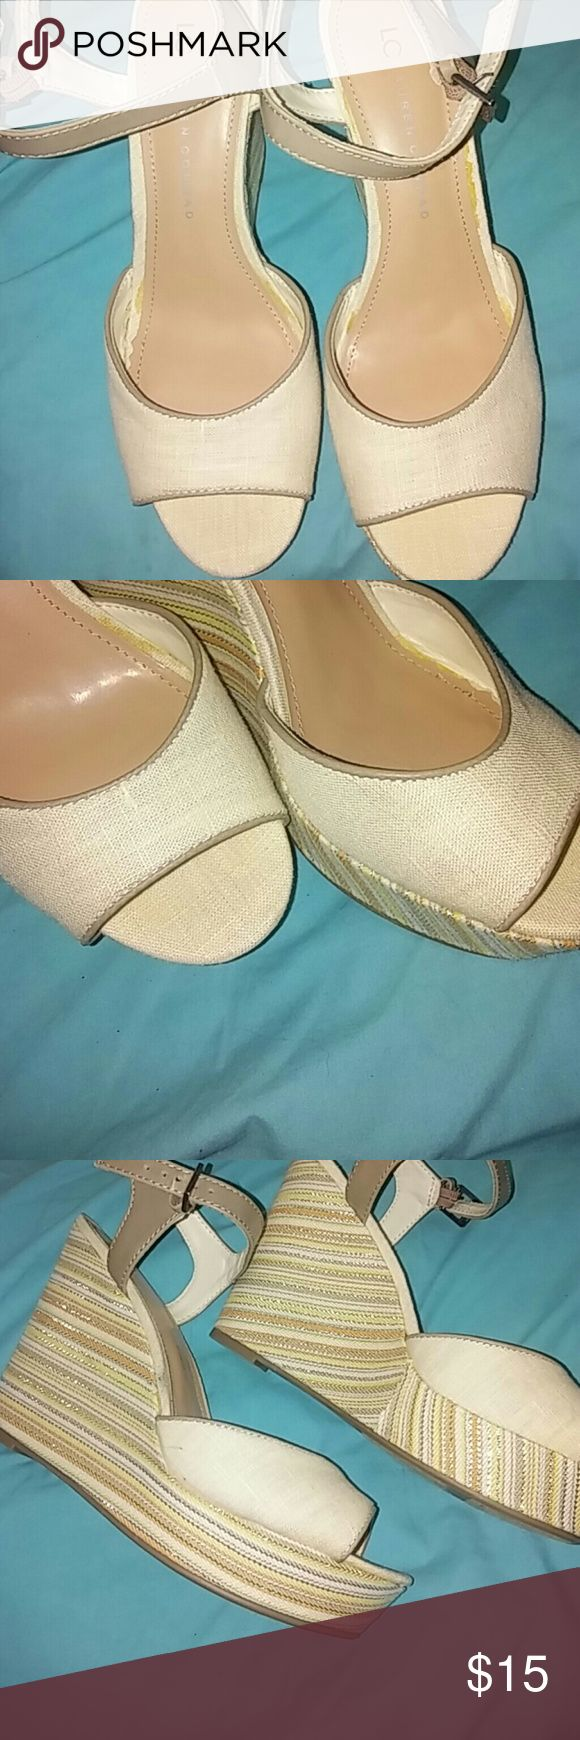 Lauren Conrad wedge sandals Multi color wedge with a platform. Sz8 LC Lauren Conrad sandal, like new condition. Never worn, no tag Shoes Wedges